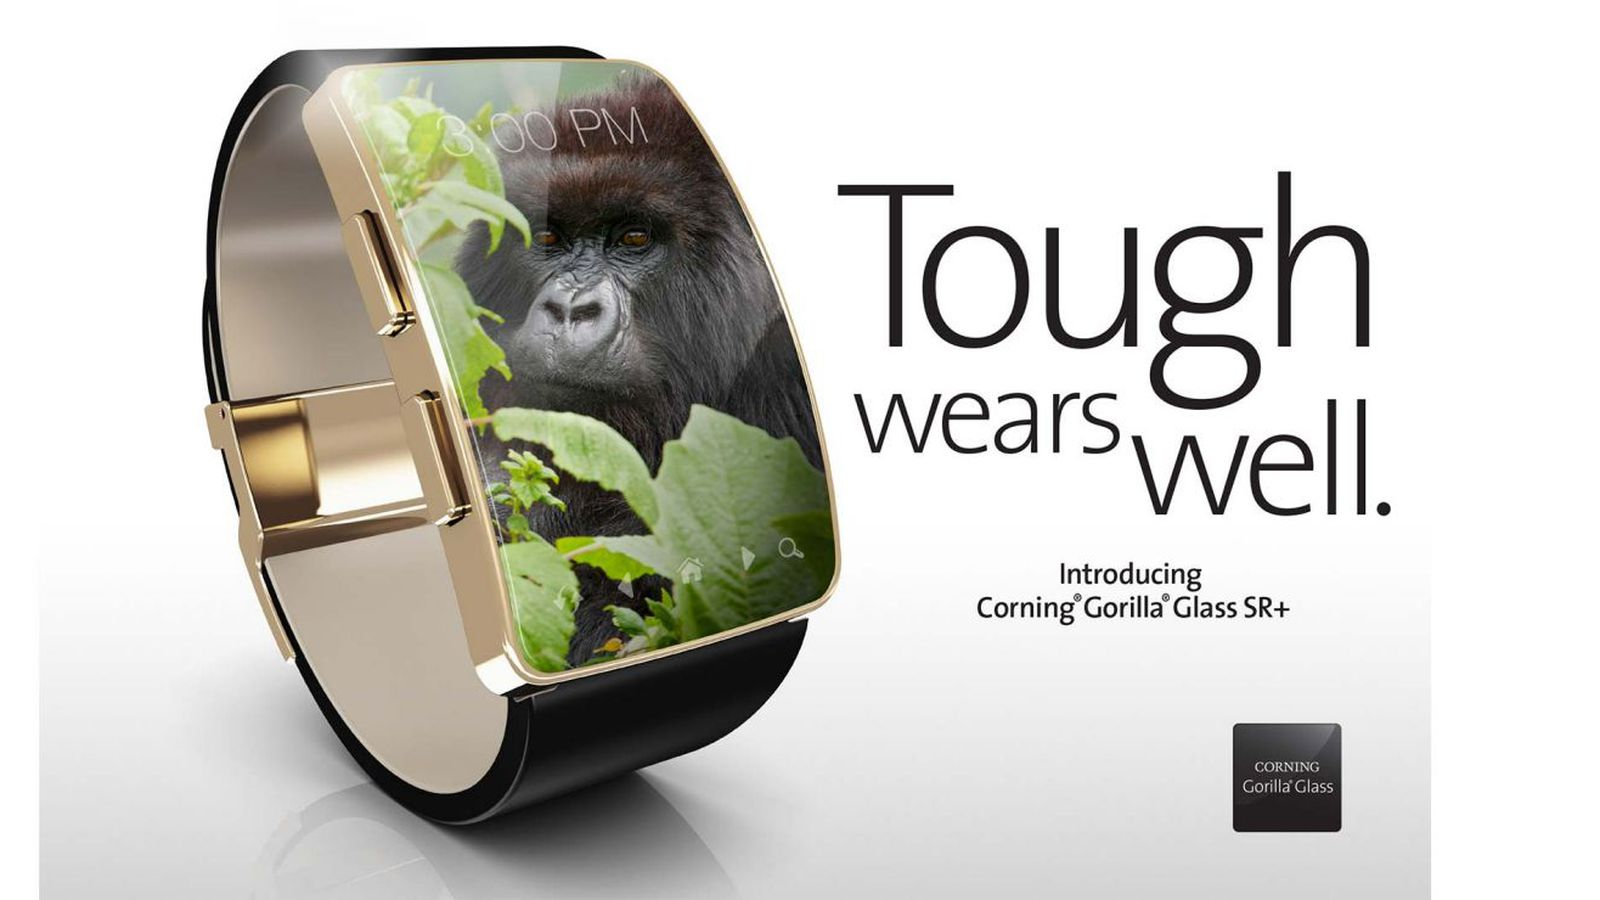 new gorilla glass will make smartwatches harder to scratch the verge. Black Bedroom Furniture Sets. Home Design Ideas